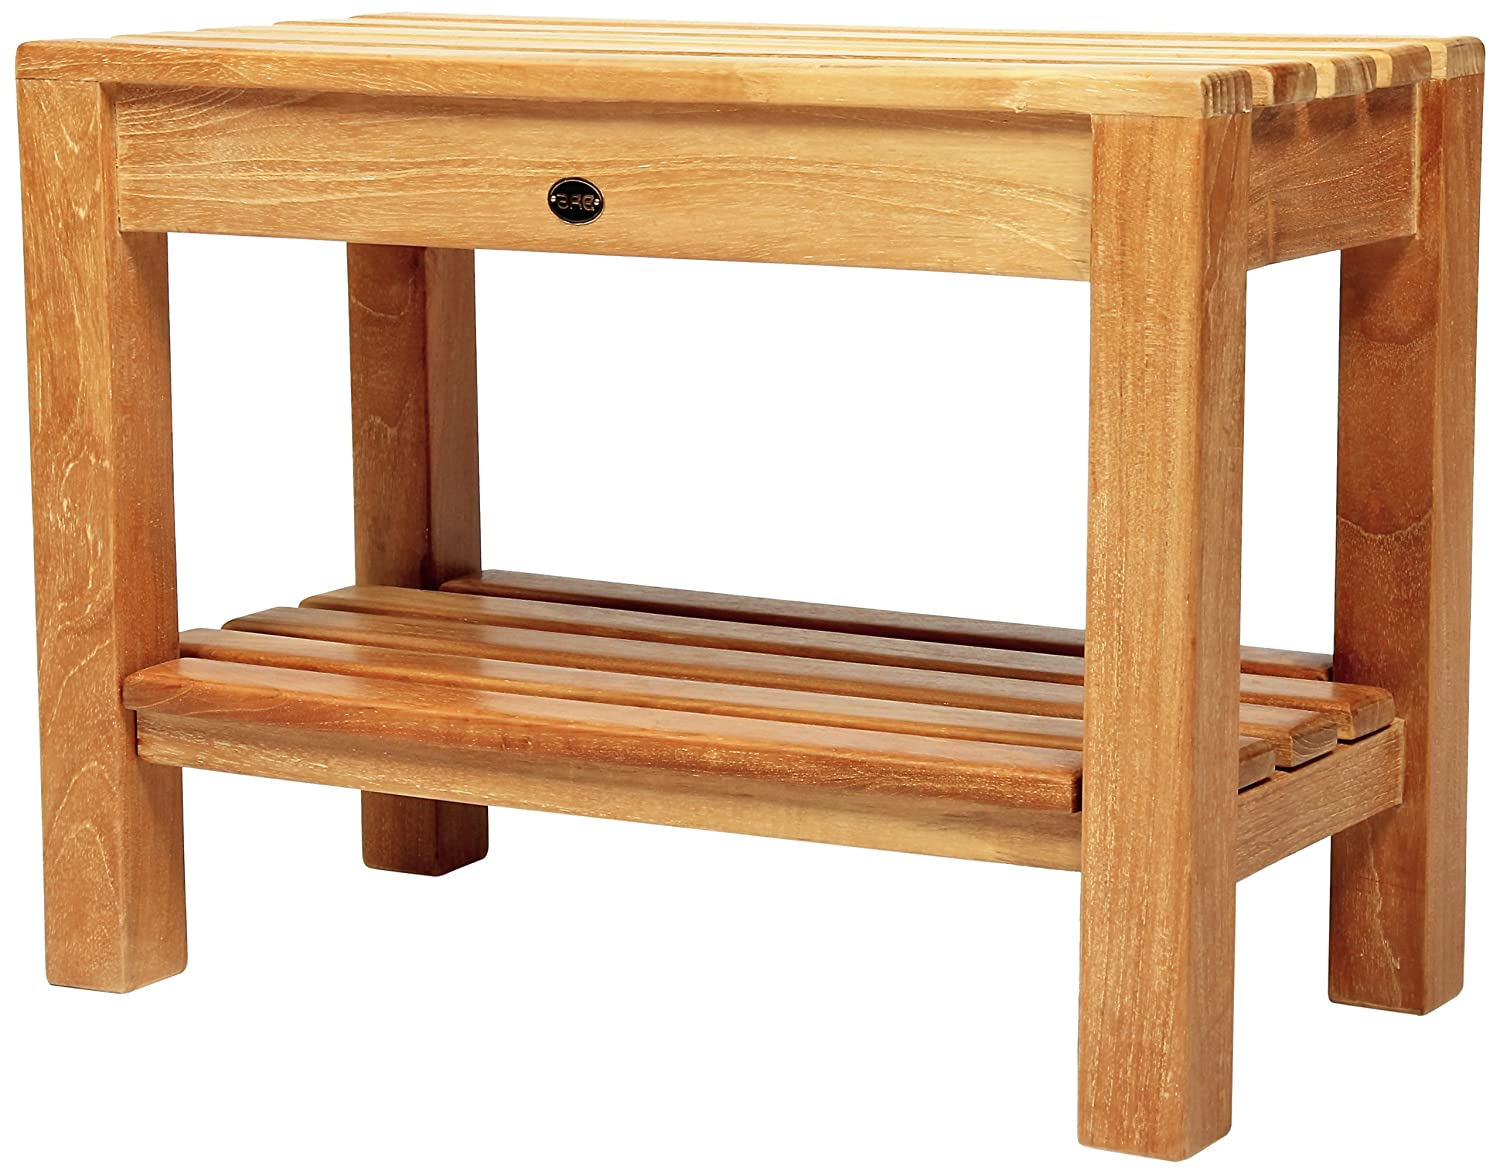 Amazon.com: Arb Teak & Specialties Coach Teak Shower Bench with ...